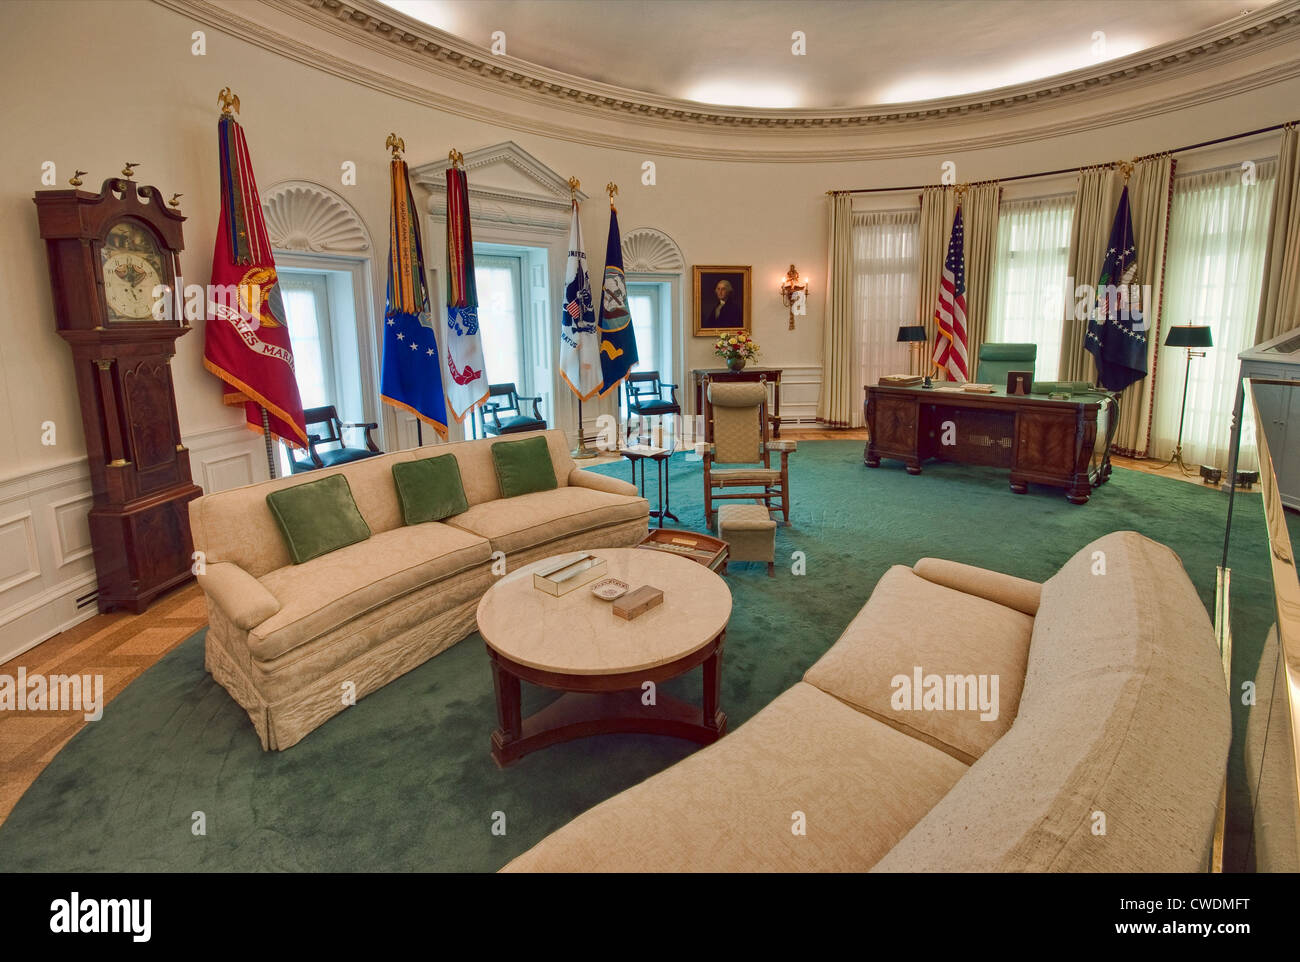 lbj oval office. The Oval Office In White House Replica At Lyndon Baines Johnson Library And Museum (LBJ Library) Austin, Texas, USA Lbj T